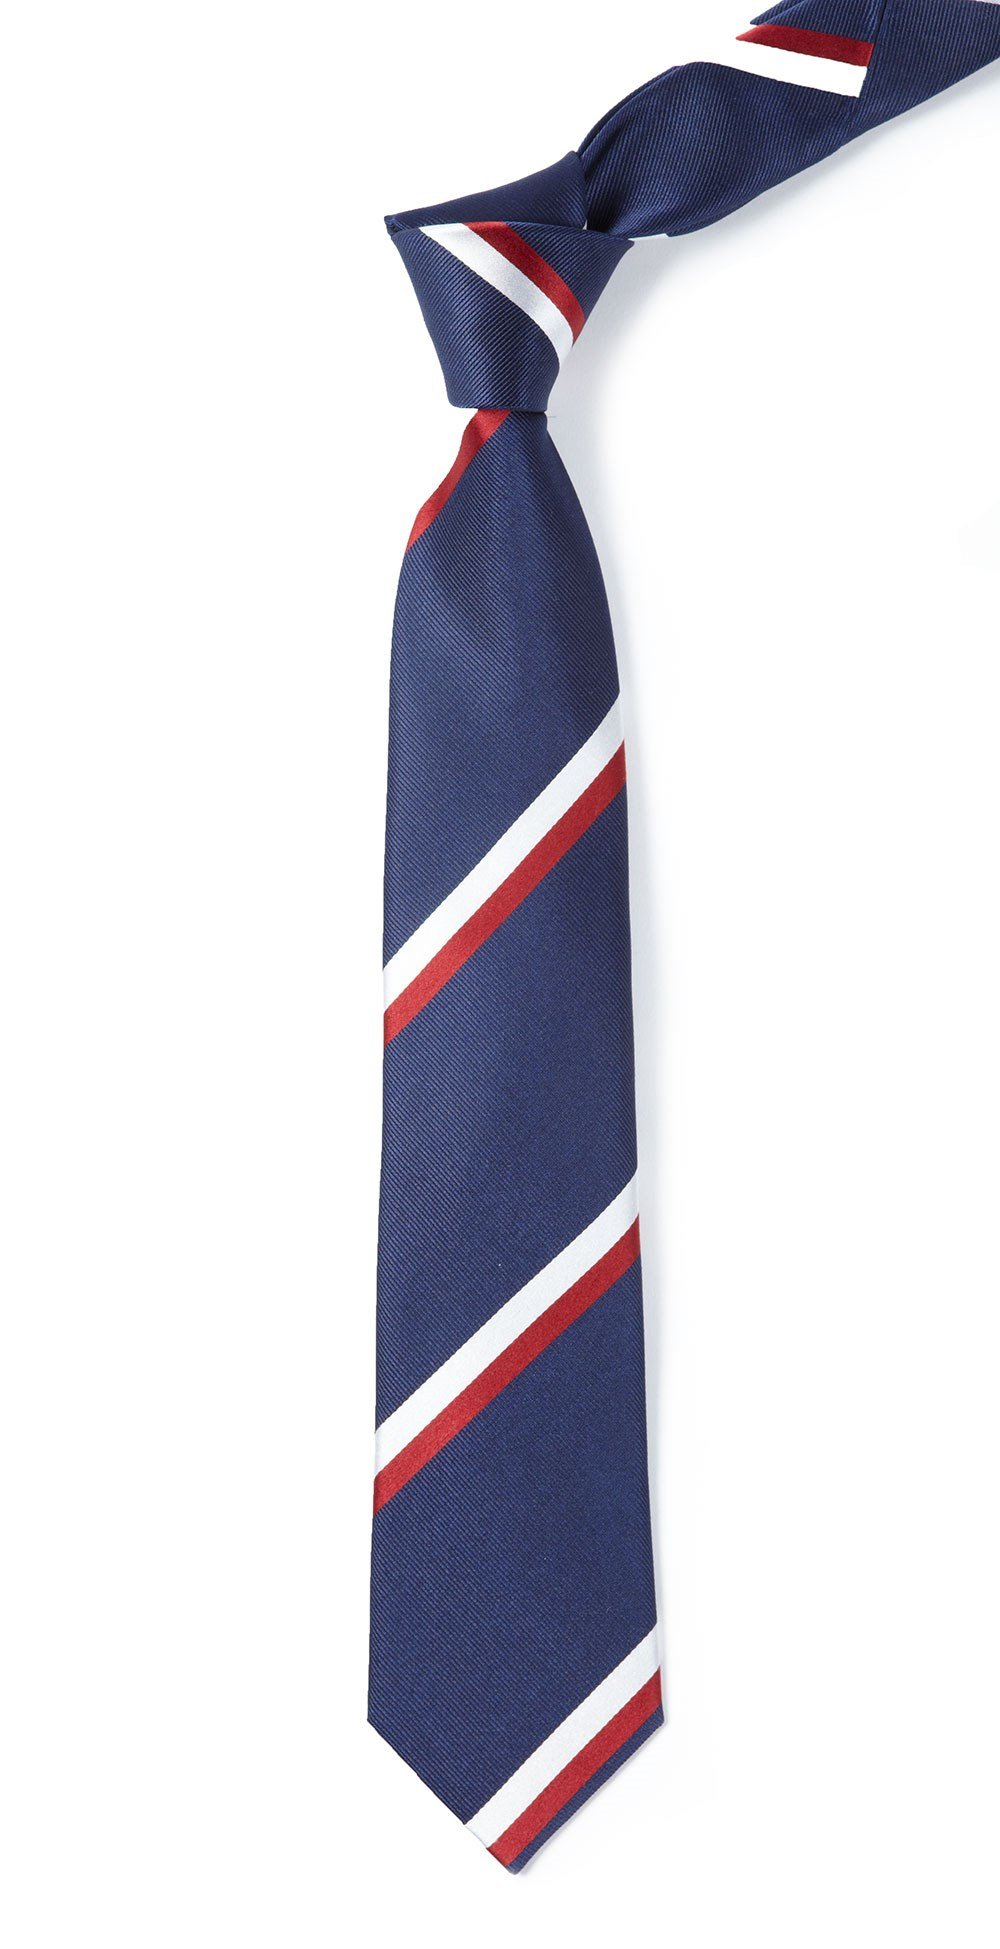 Classic navy ad stripe tie ties bow ties and pocket squares classic navy ad stripe tie classic navy ad stripe tie ccuart Image collections